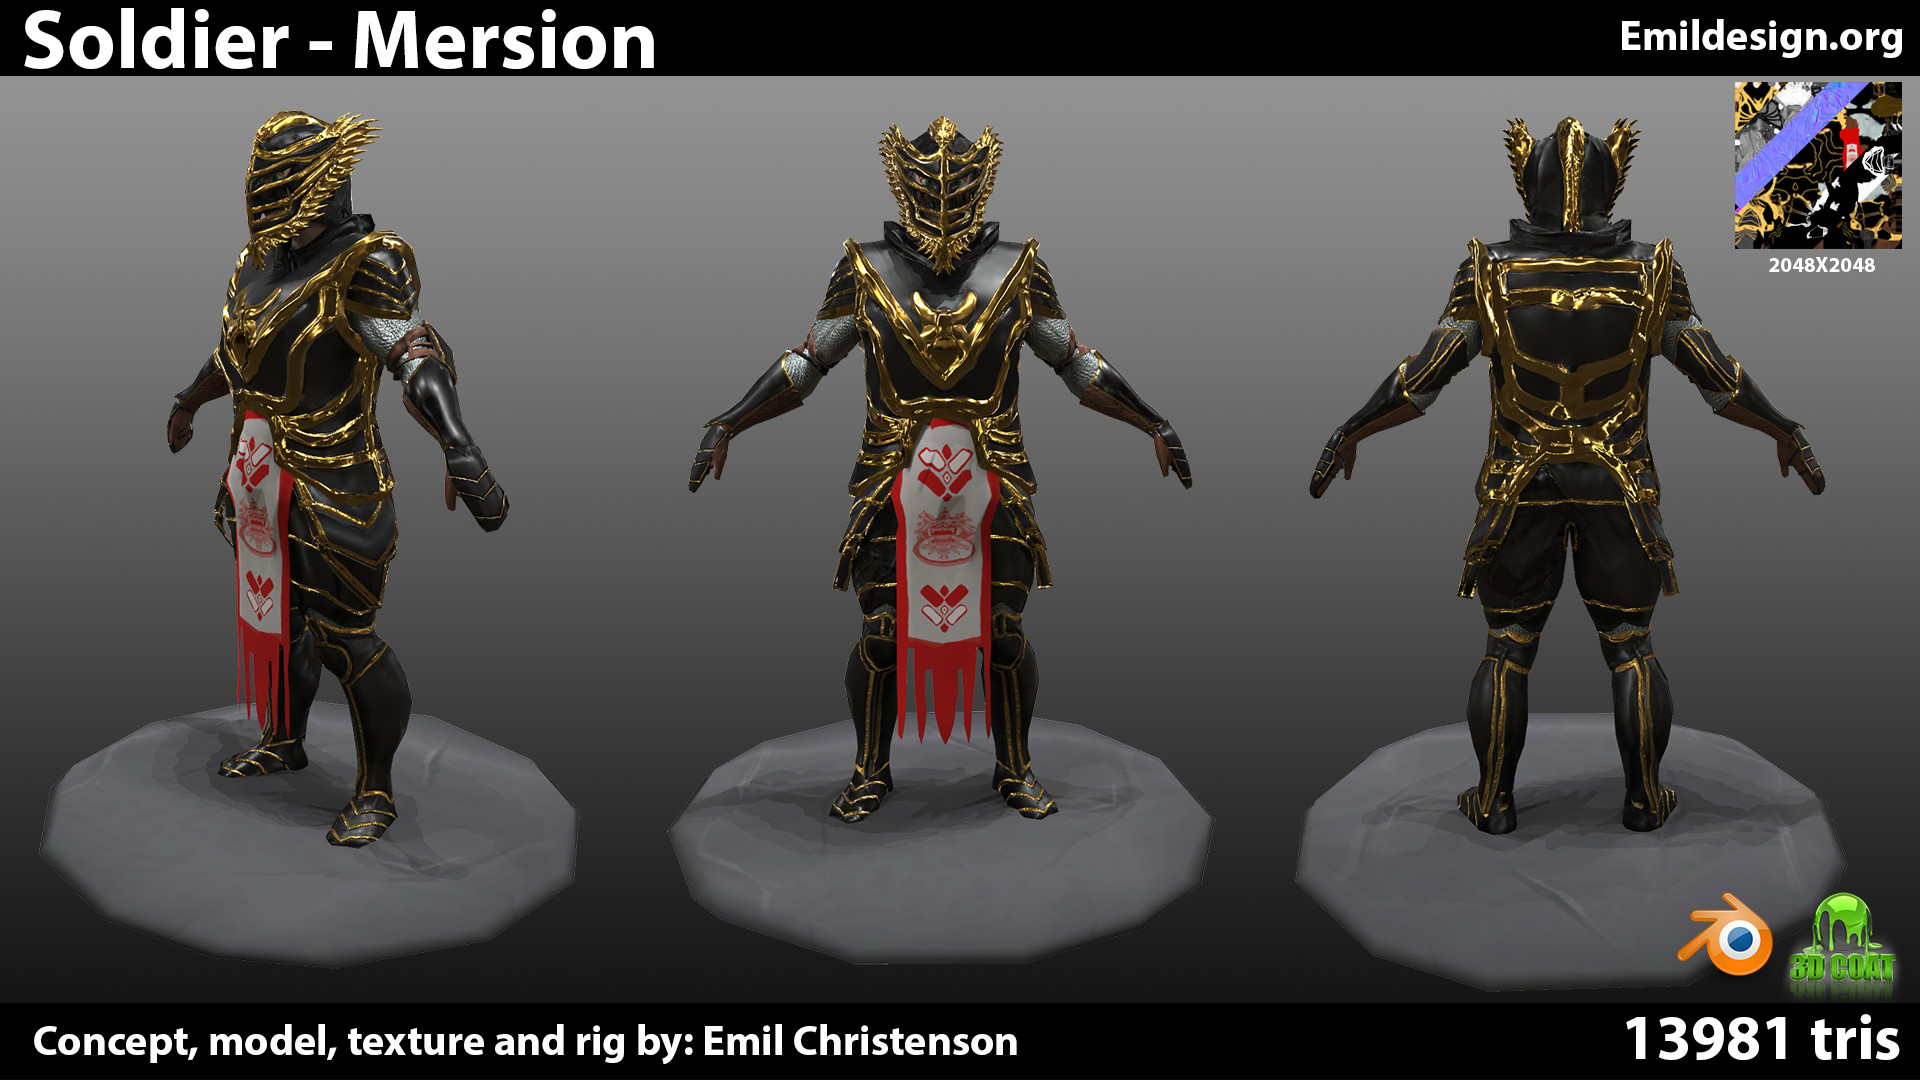 Mersion_PersonalProject